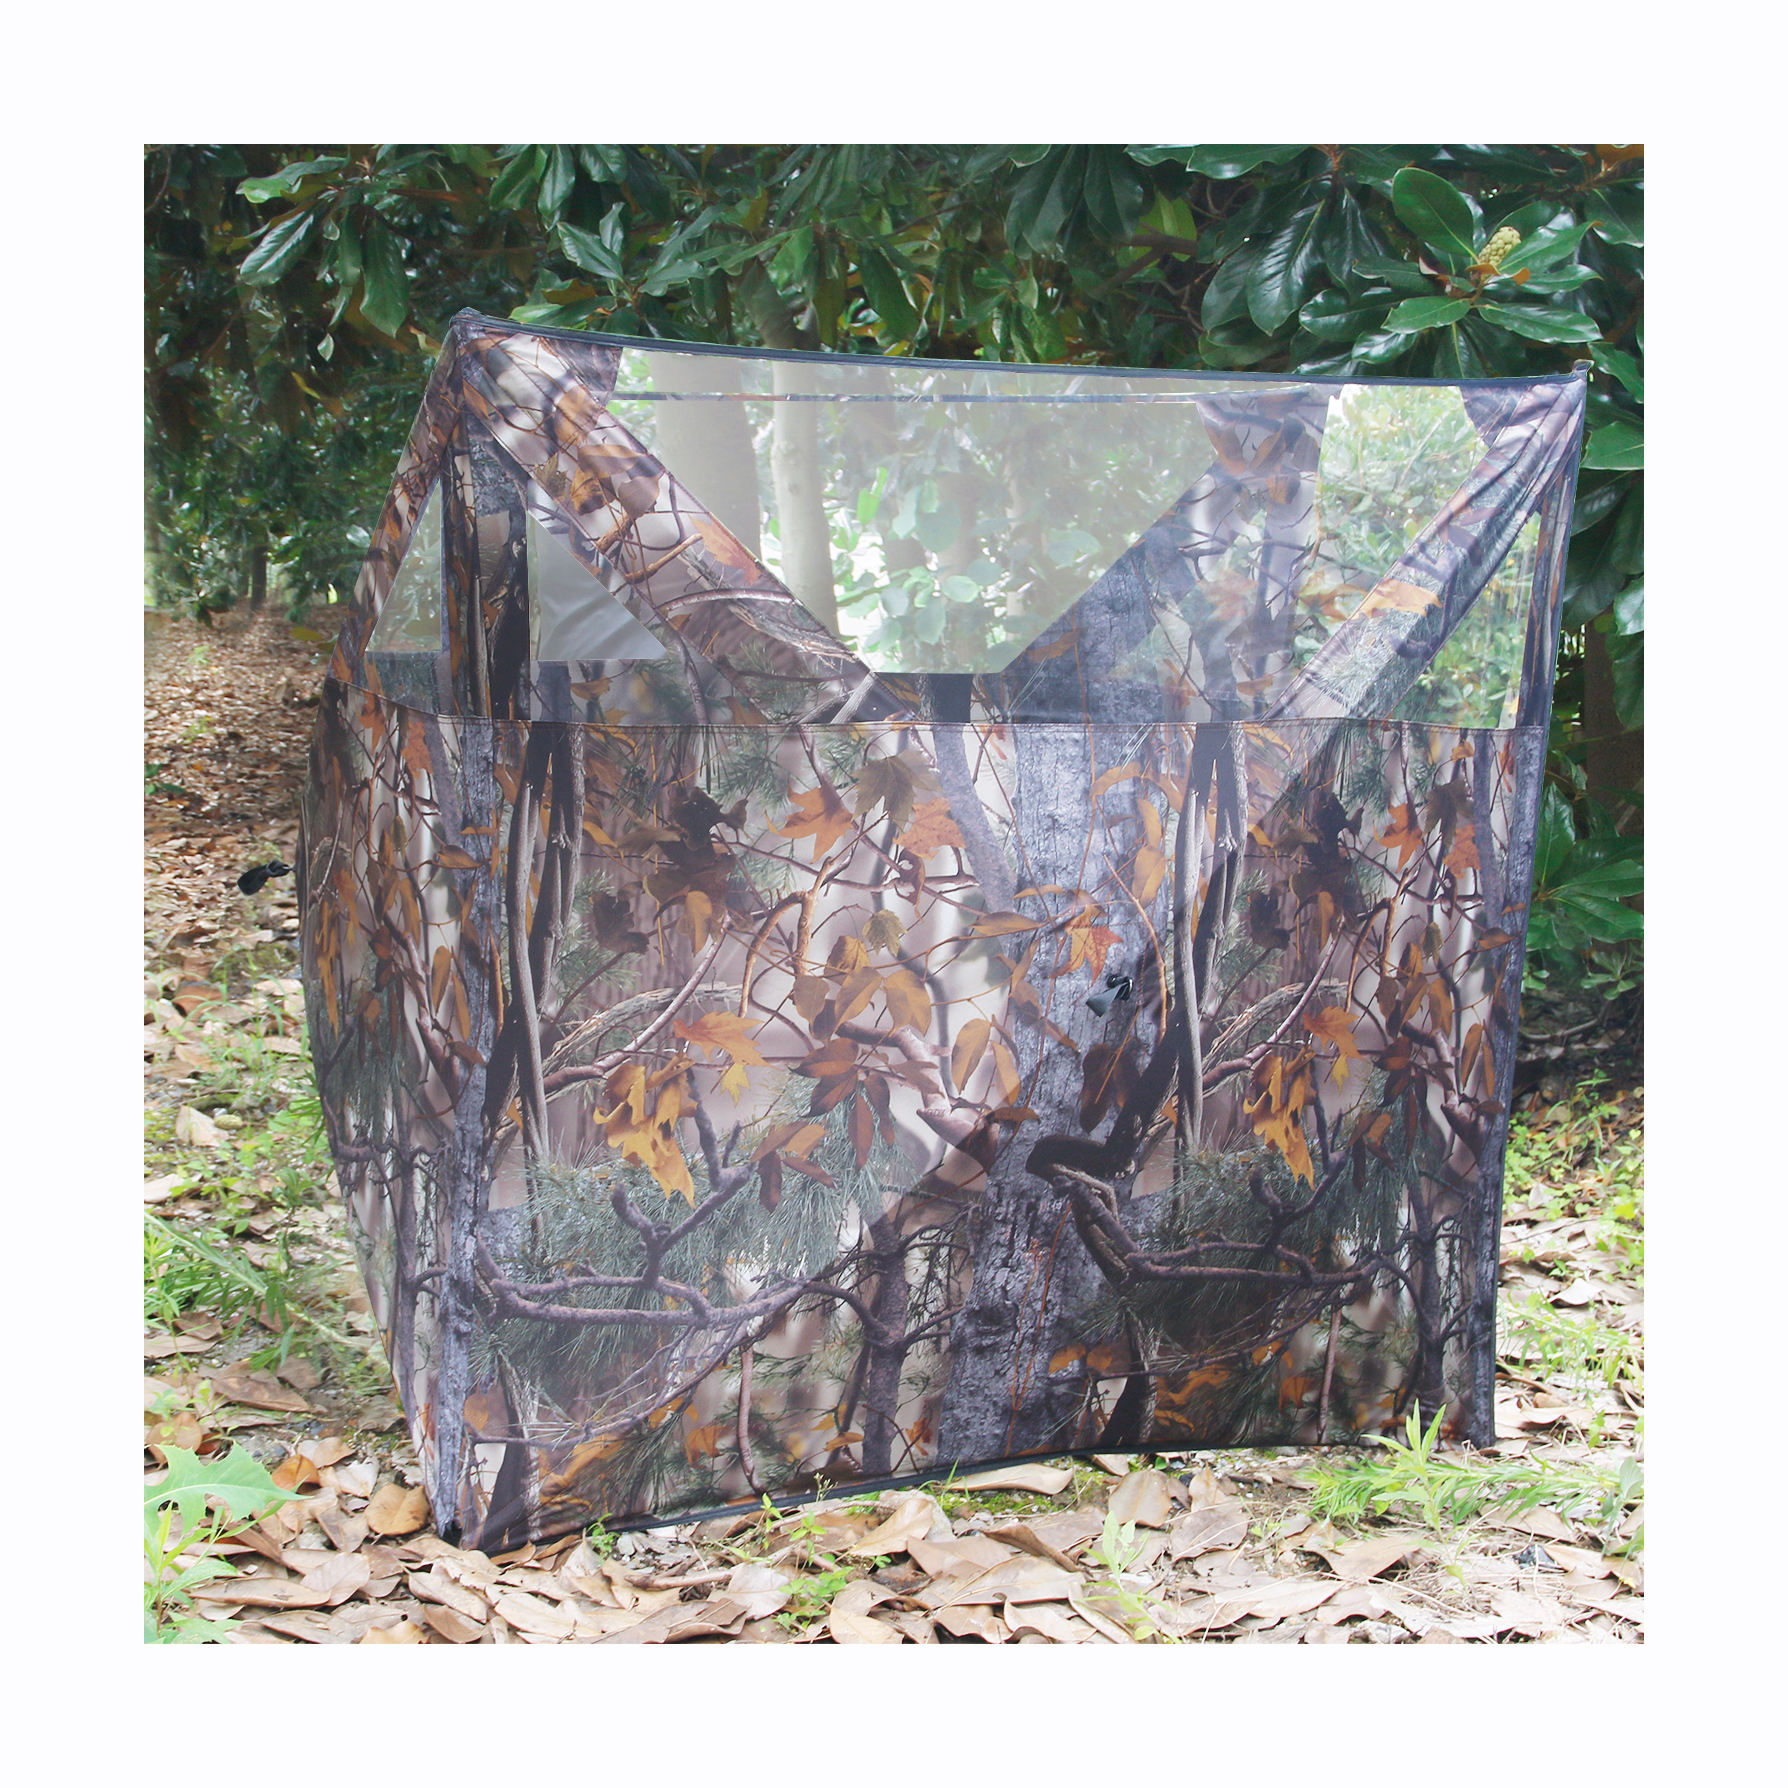 Wholesale Quick Setup Foldable Steel Frame Three Sides Camouflage Hunting Blind with Pegs See-Through Mesh